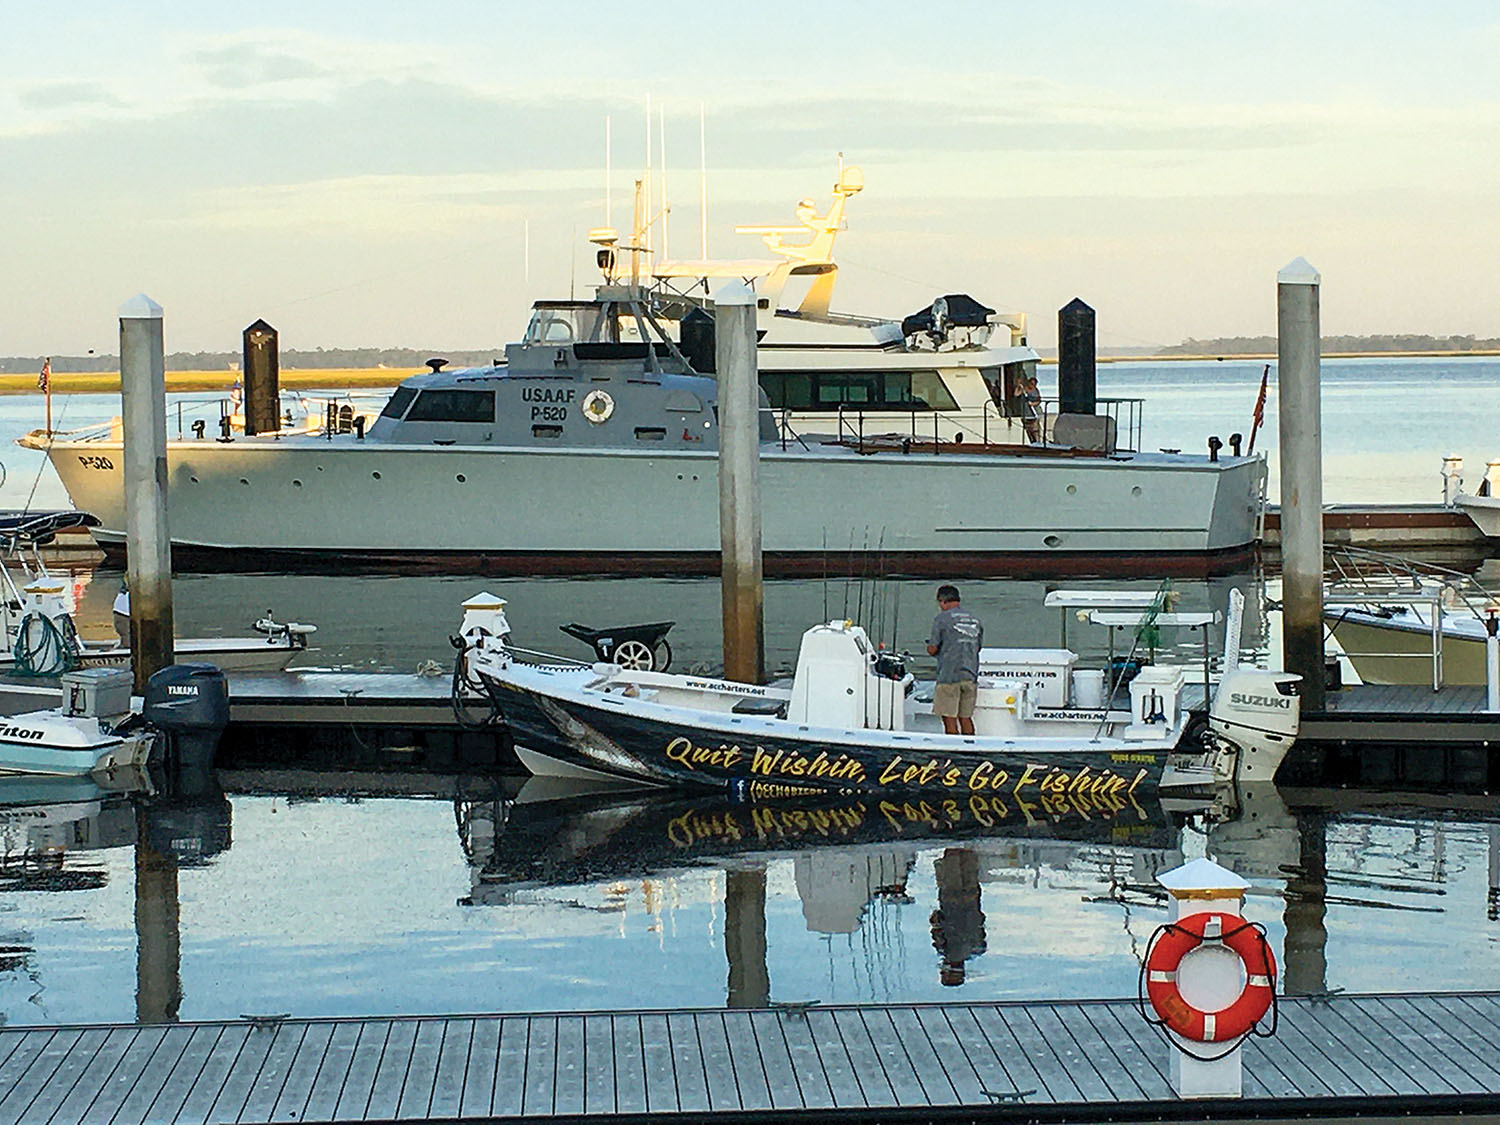 The P-520, believed to be the last U.S. Army Air Corps rescue boat still in military configuration, floats in a marina near the Florida/Georgia line. Neither it nor a World War II submarine are now headed to the Louisville, Ky., area.